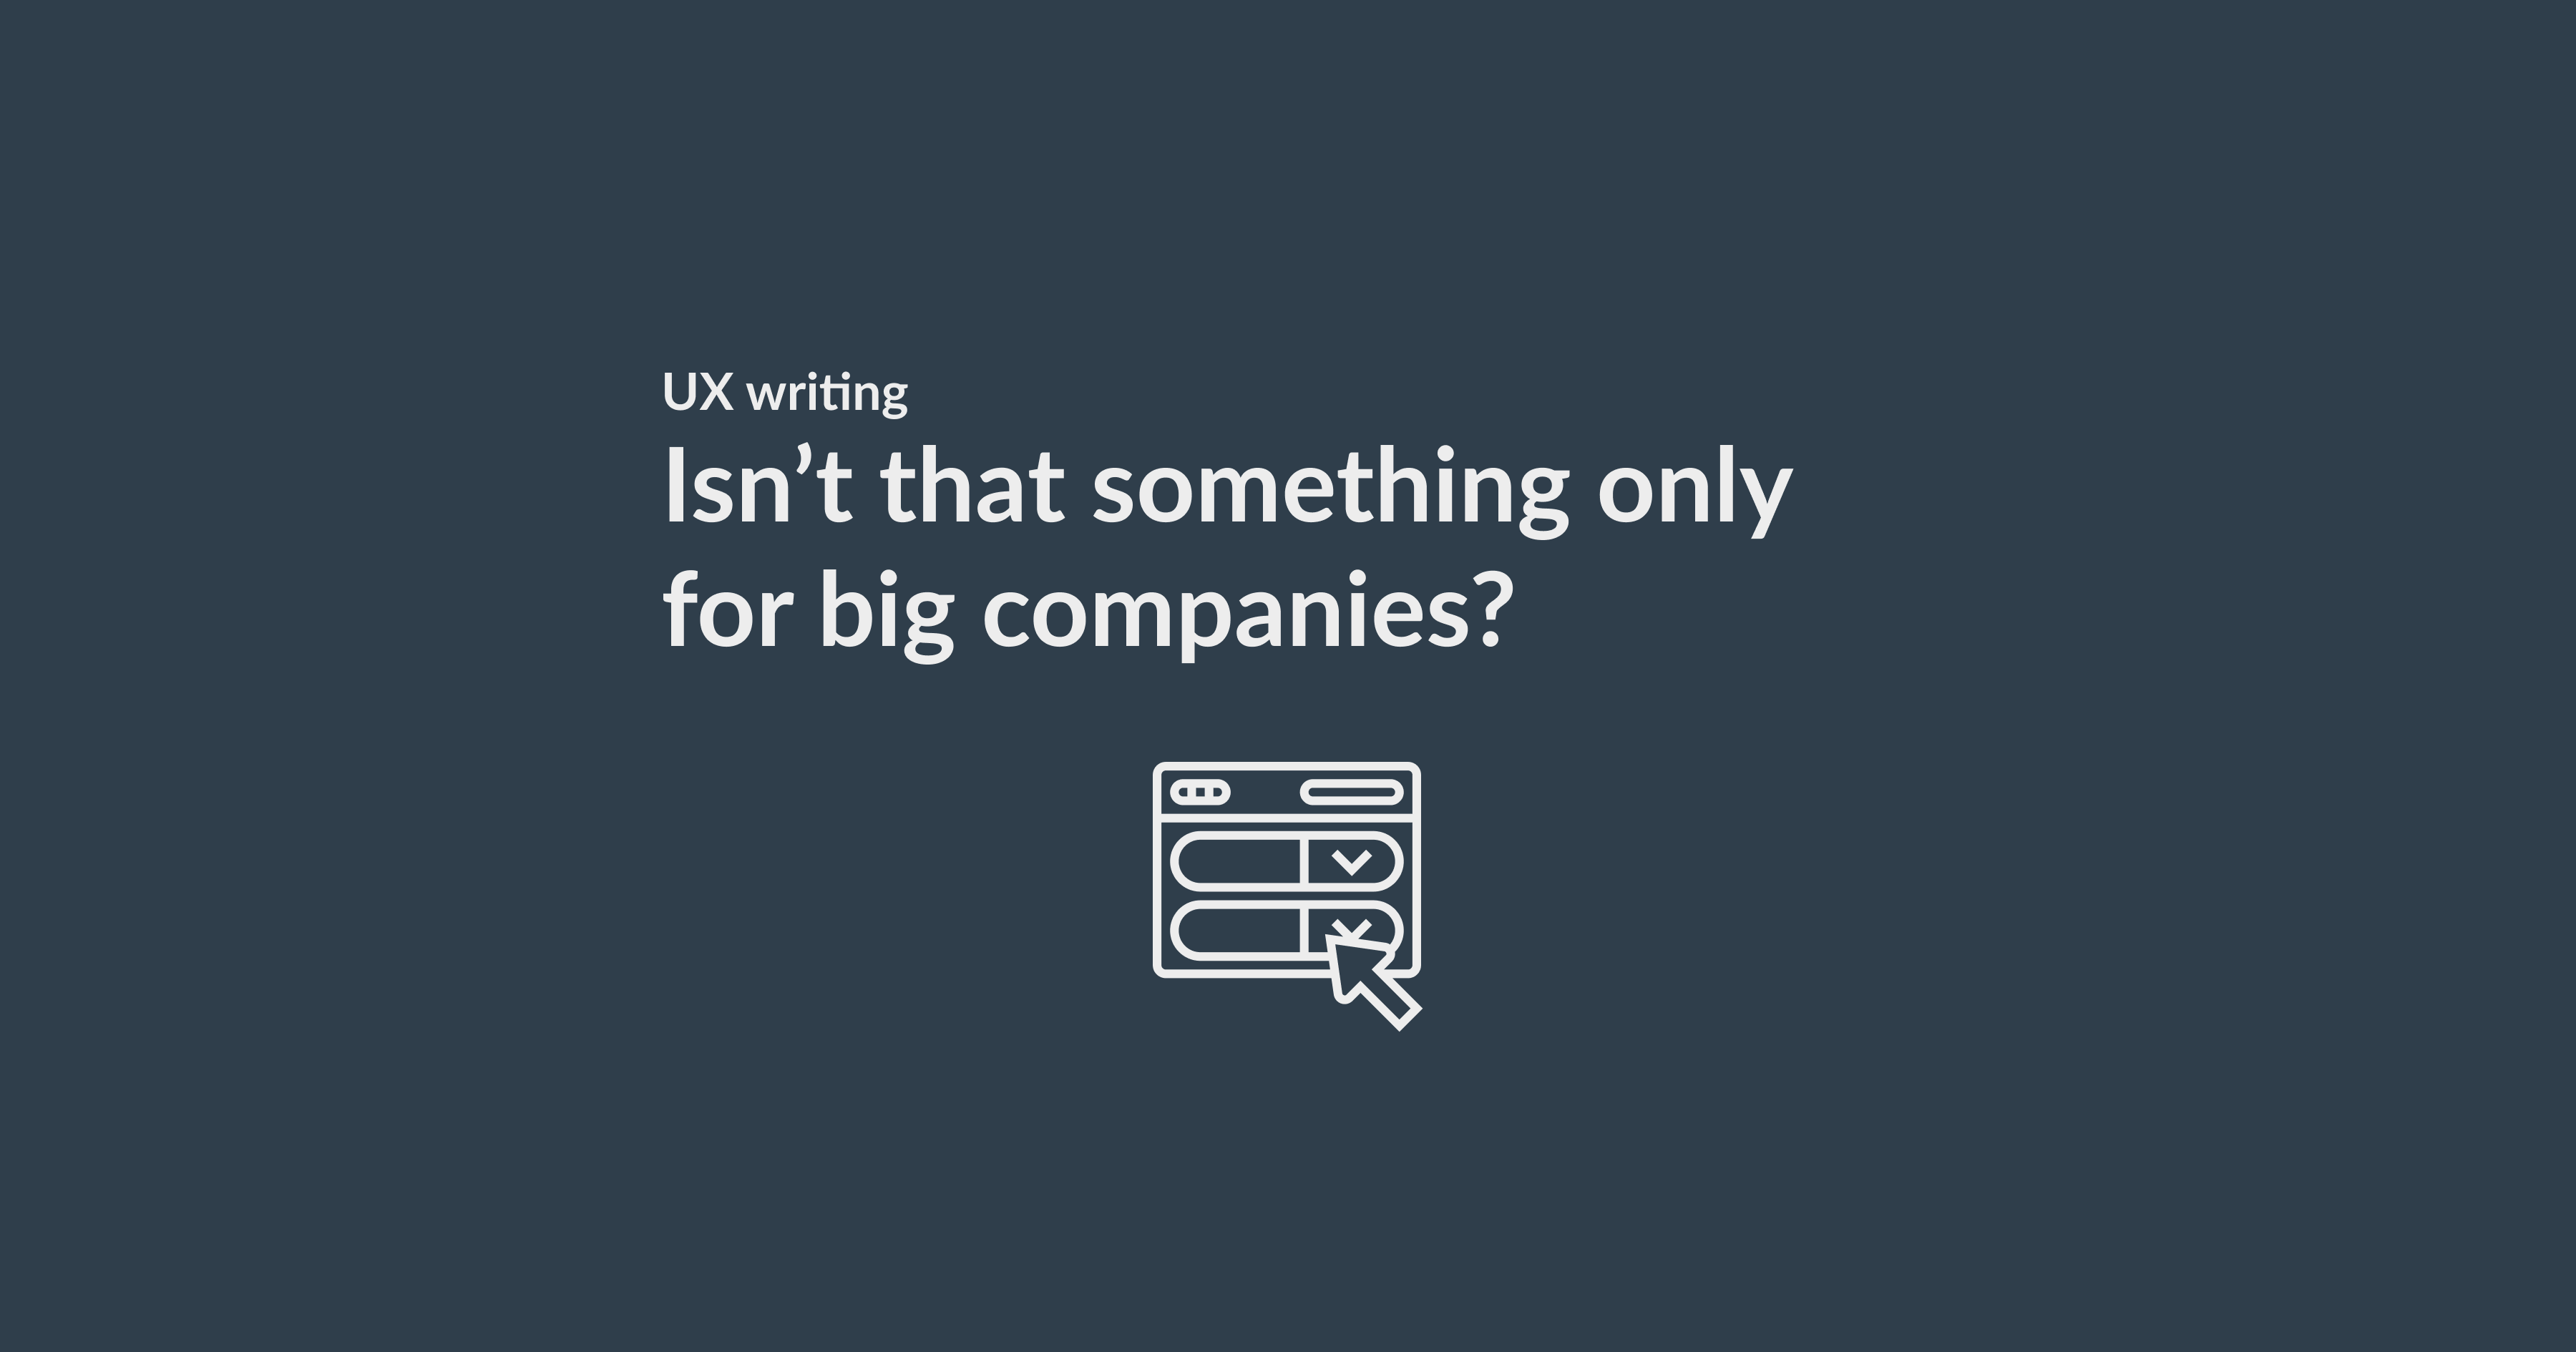 UX writing for small companies and NGOs